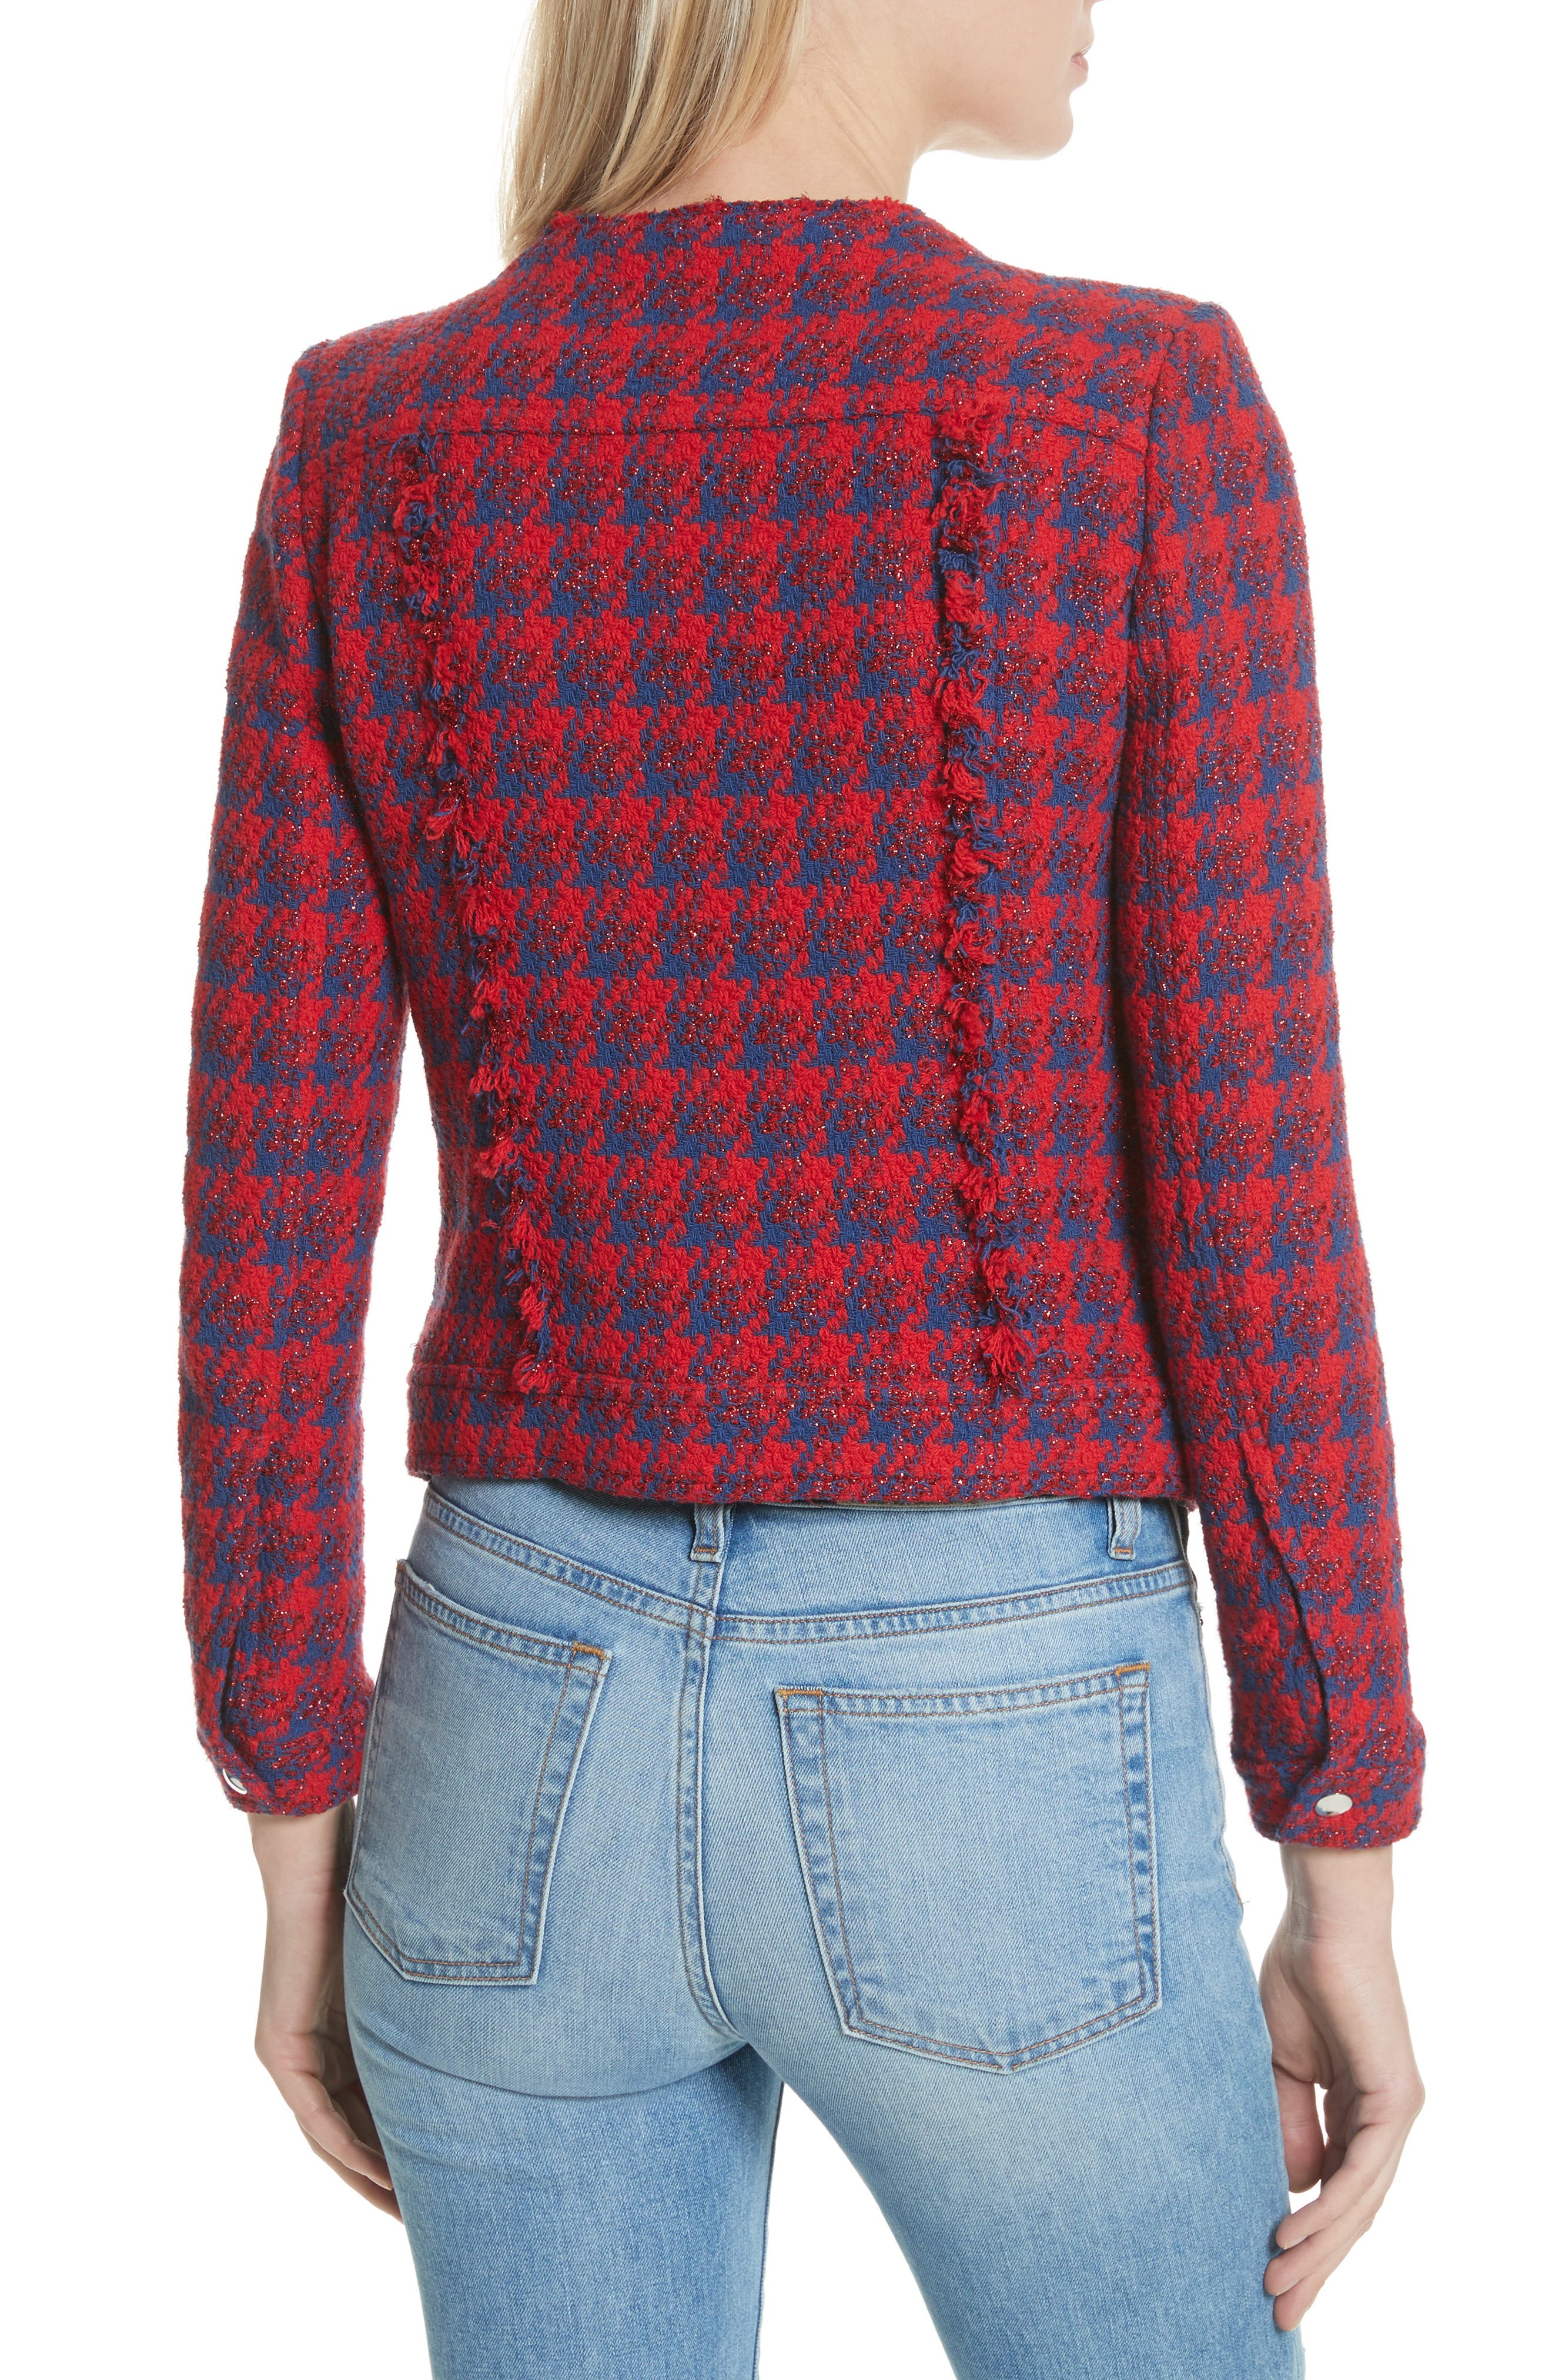 Quilombre Houndstooth Tweed Jacket,                             Alternate thumbnail 2, color,                             Red/ Blue